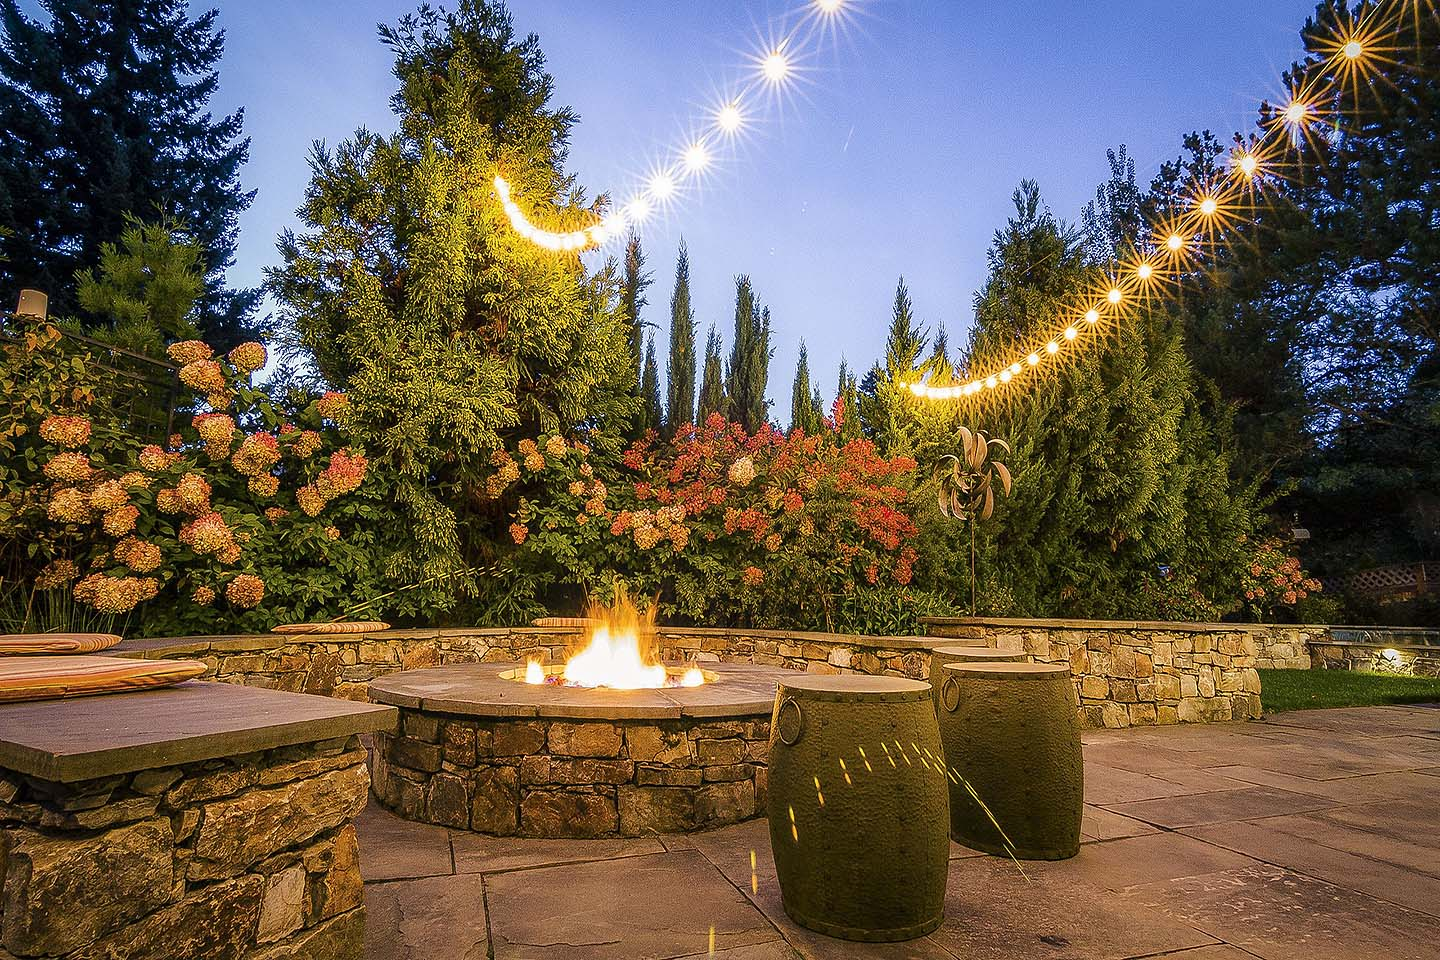 Firepit with circular seatwalls